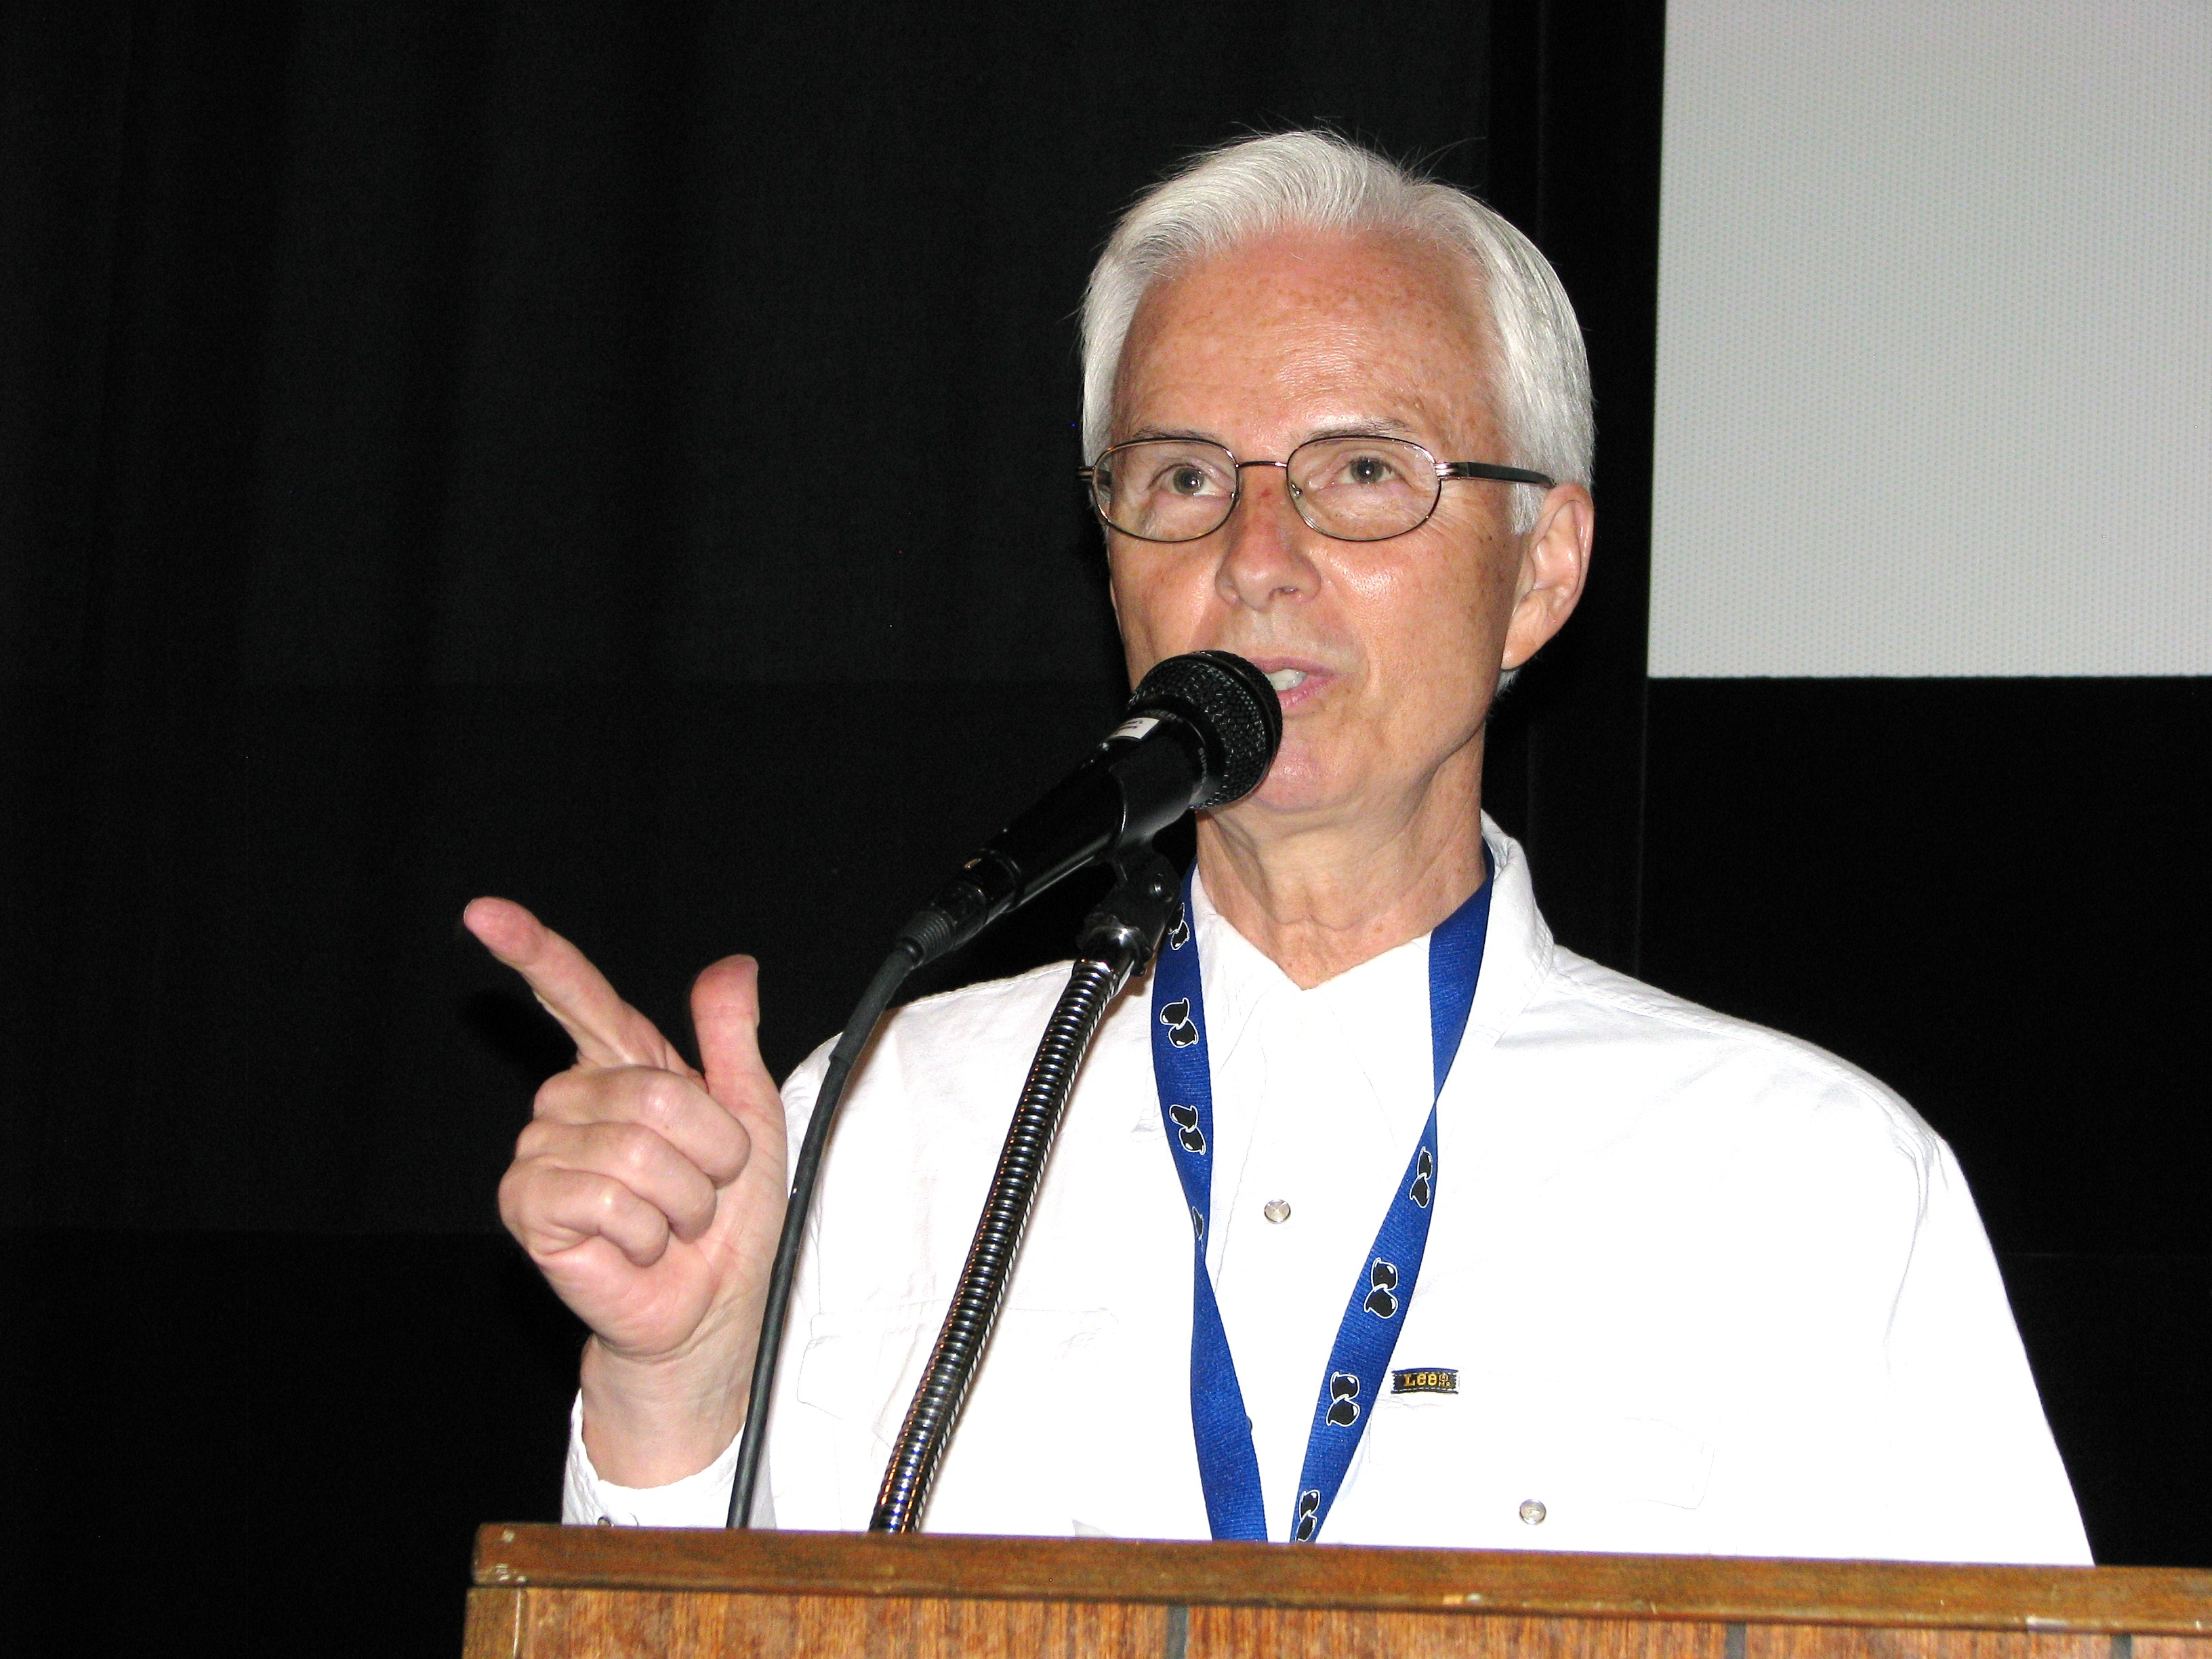 Richard W. Bann introduced another amazing night of films as the convention came to a close.  Thanks Dick for your support with pictures and the films and helping with the film programs!